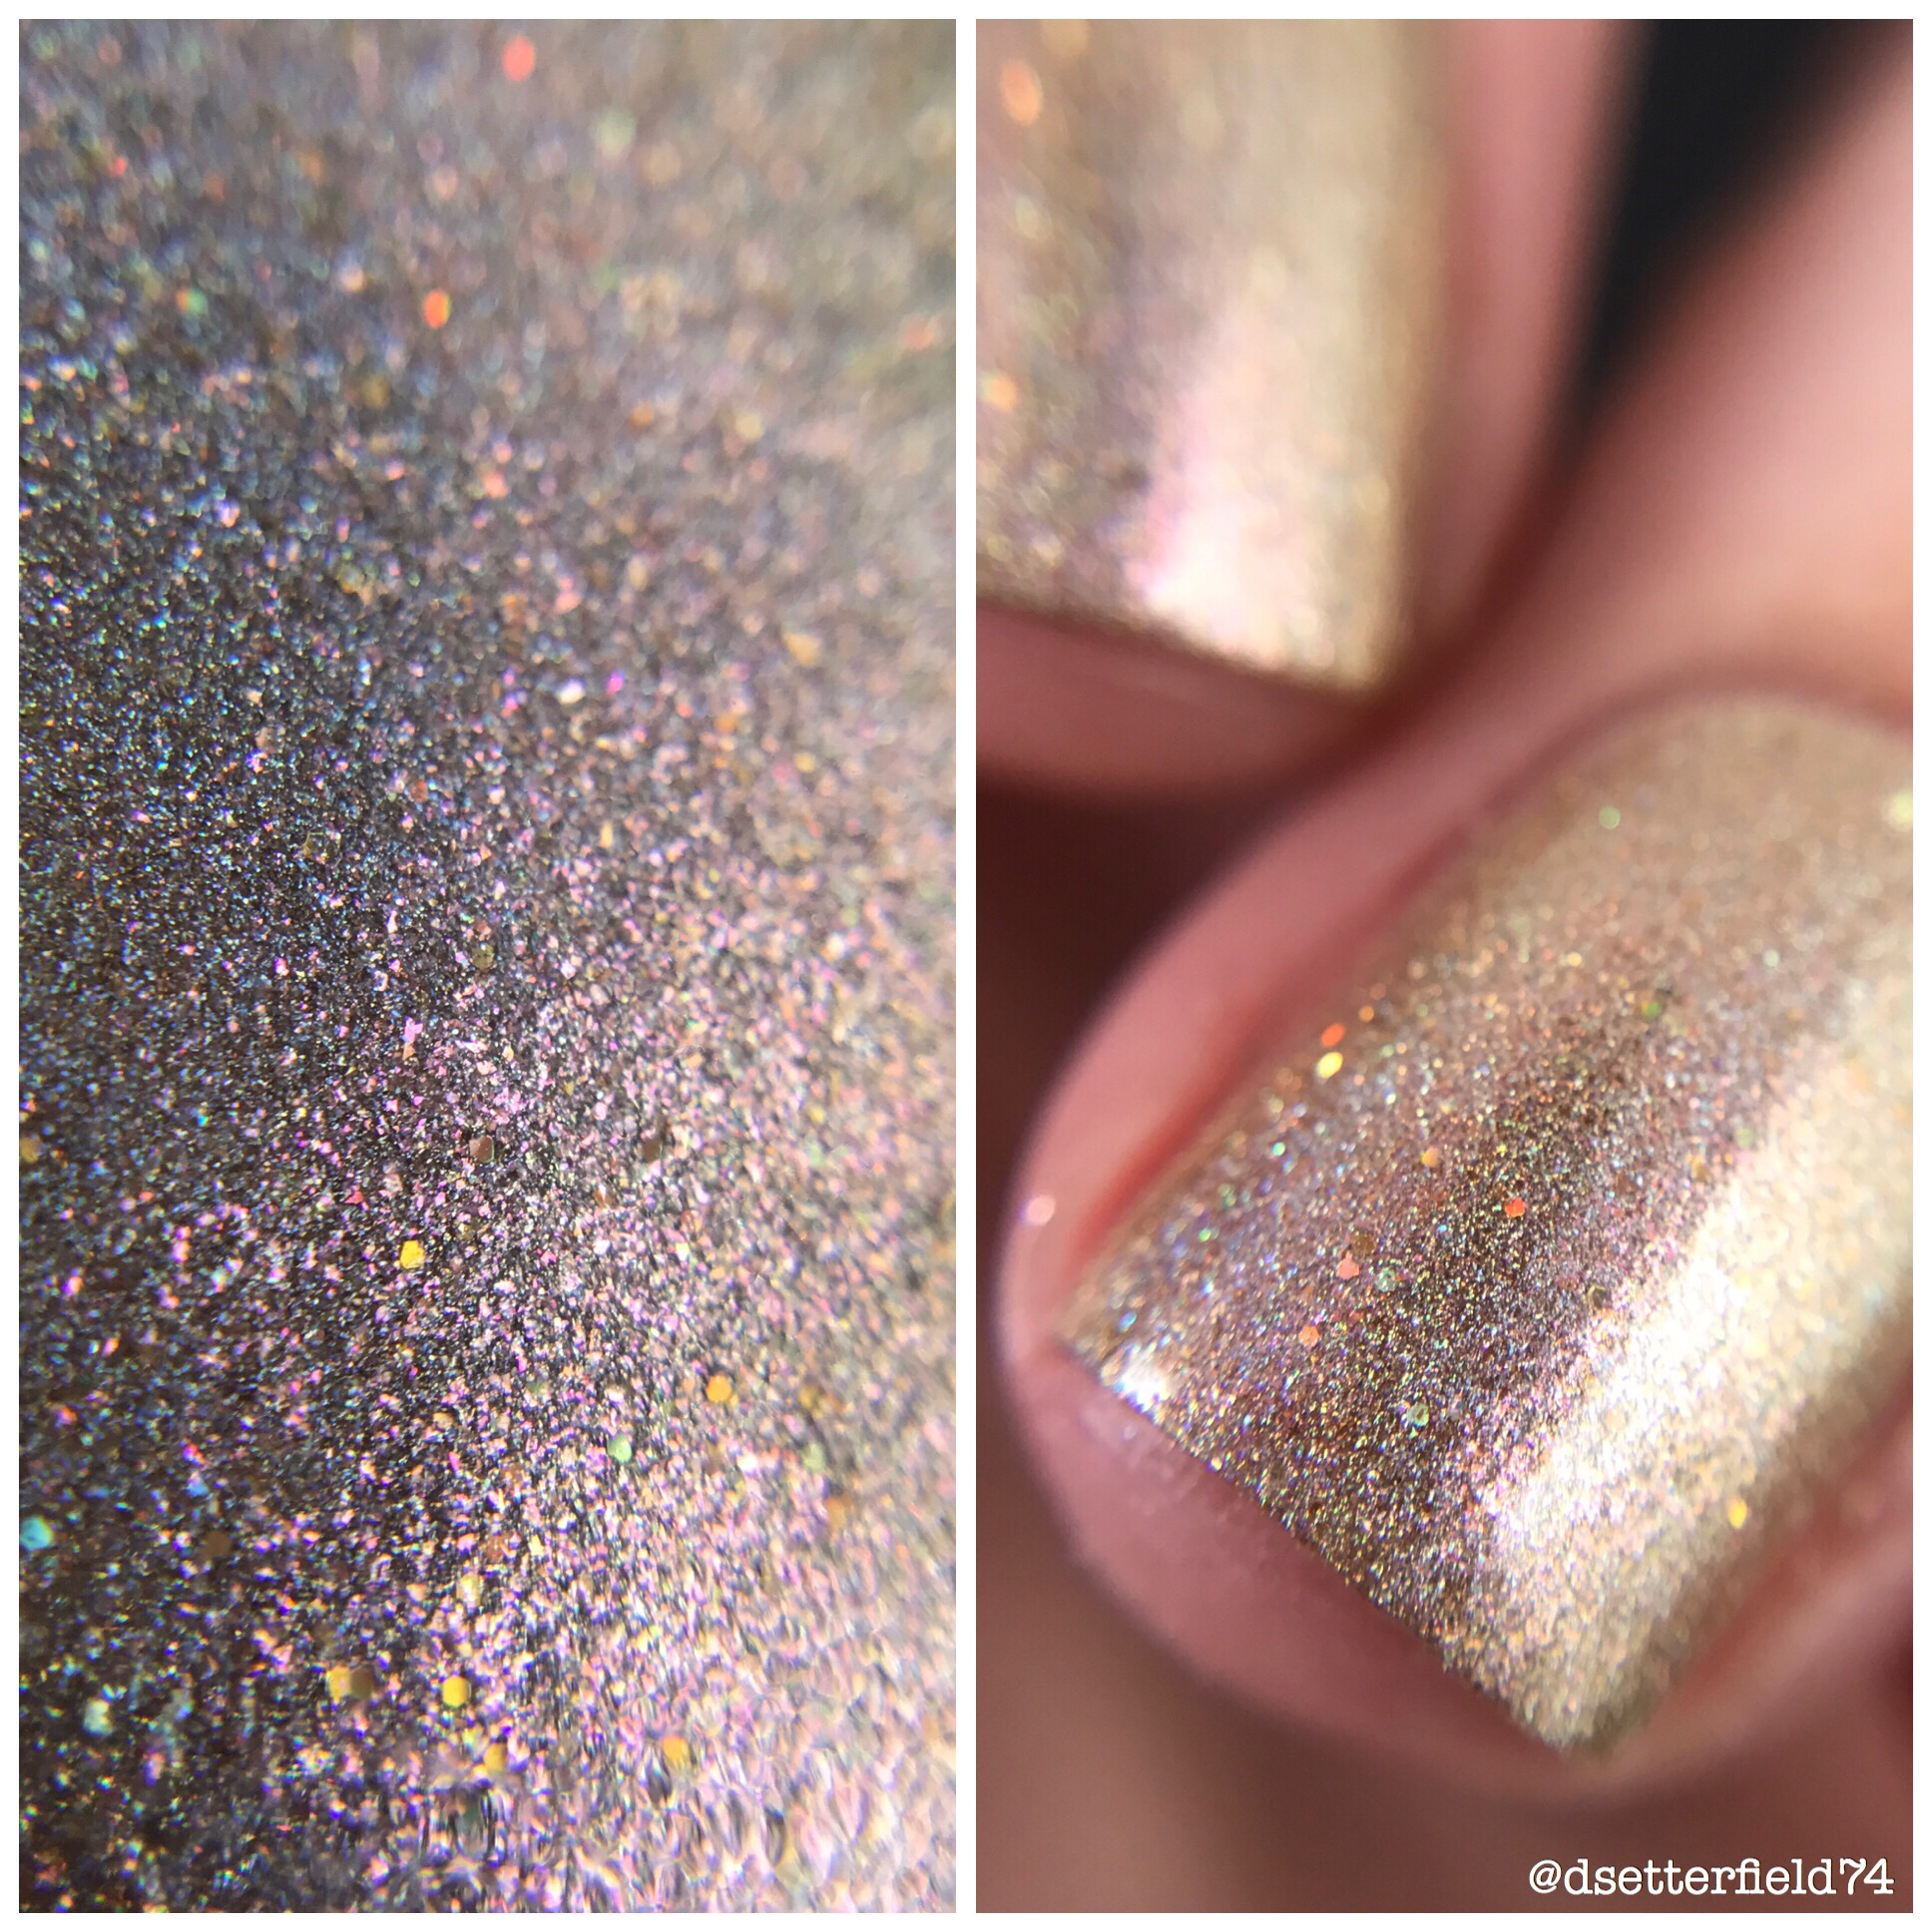 holo hookup july It's that time again we have another the holo hookup post, and it's a good one  tonight we're taking a look at the holo hookup for july 2018.